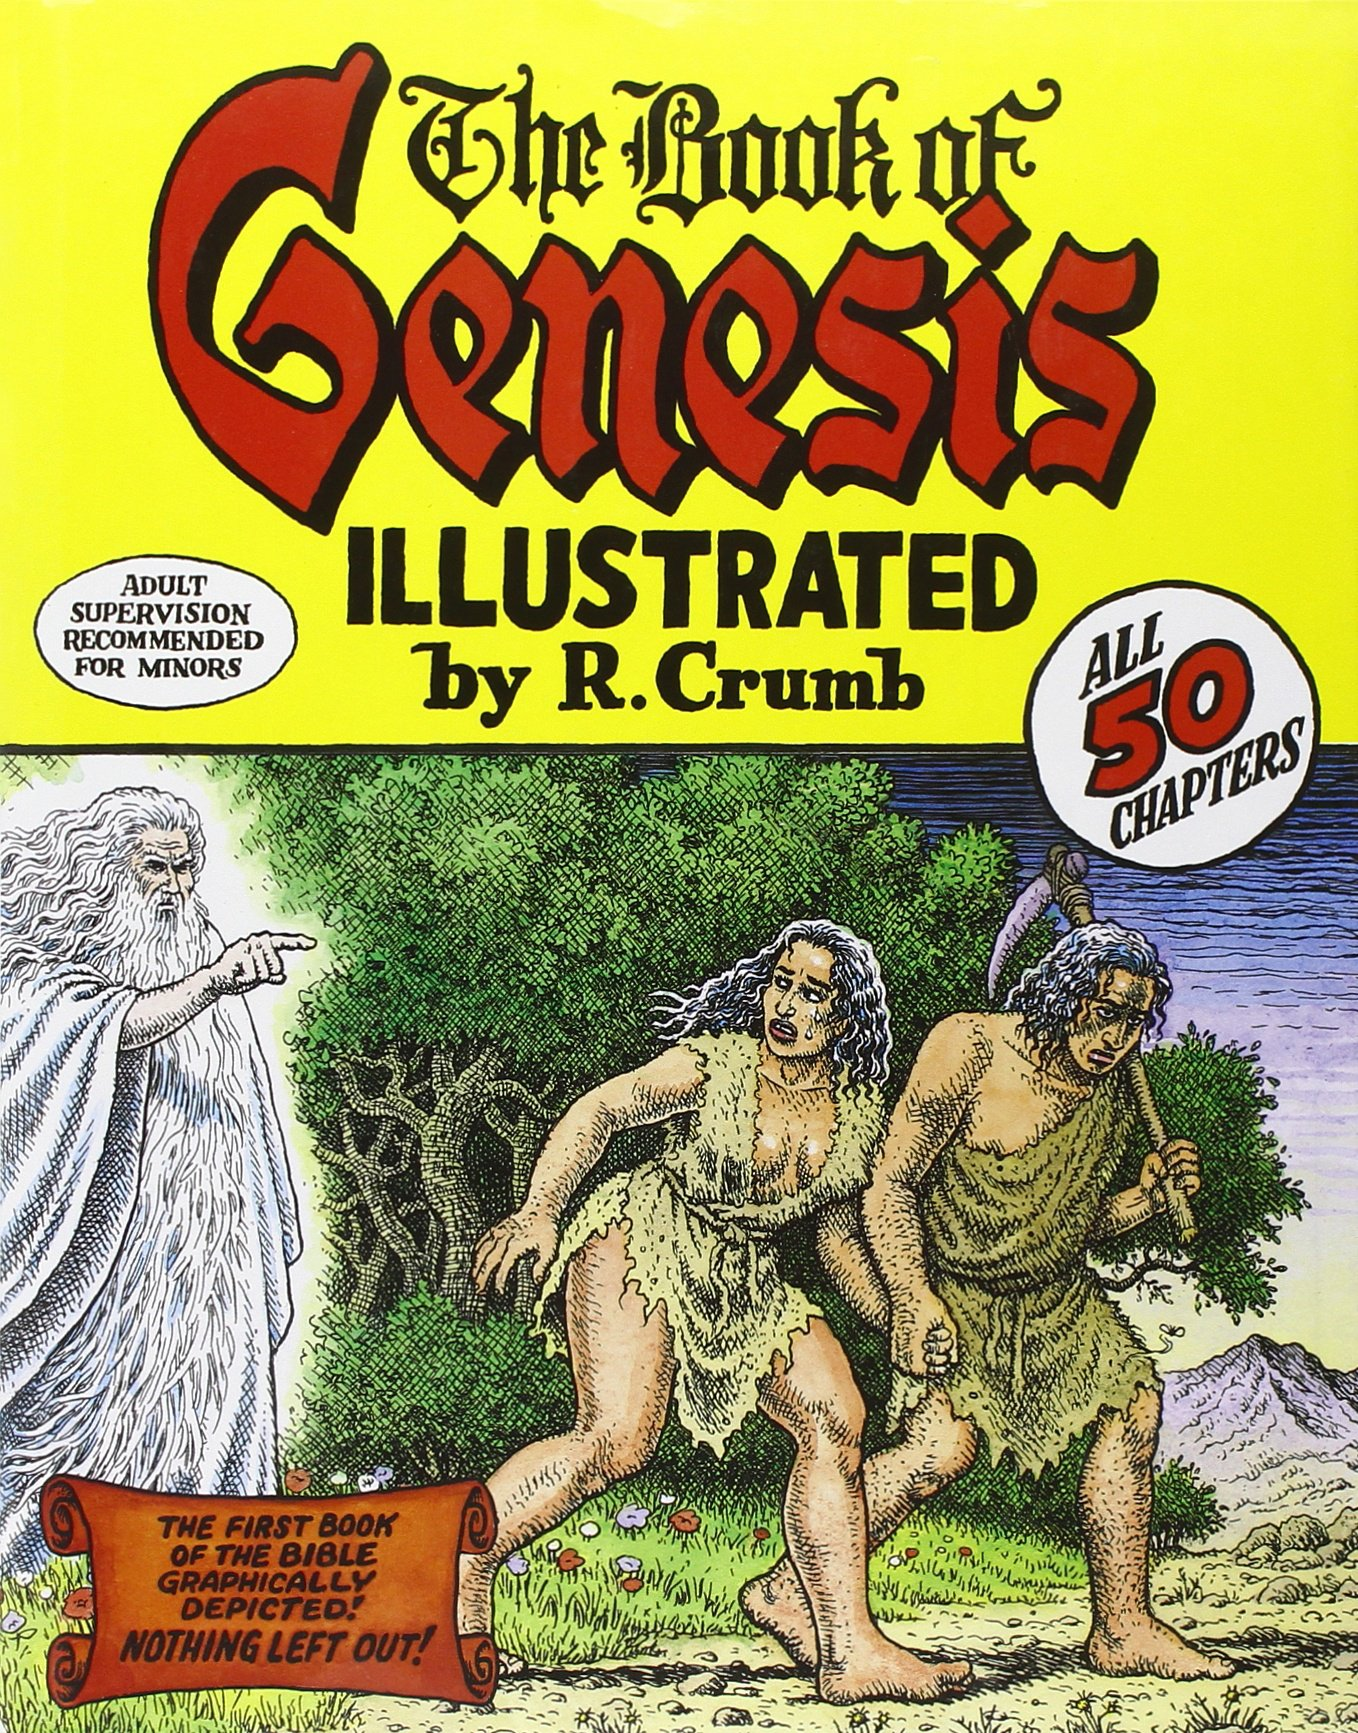 The Book of Genesis Illustrated by R. Crumb: R. Crumb: 9780393061024:  Amazon.com: Books